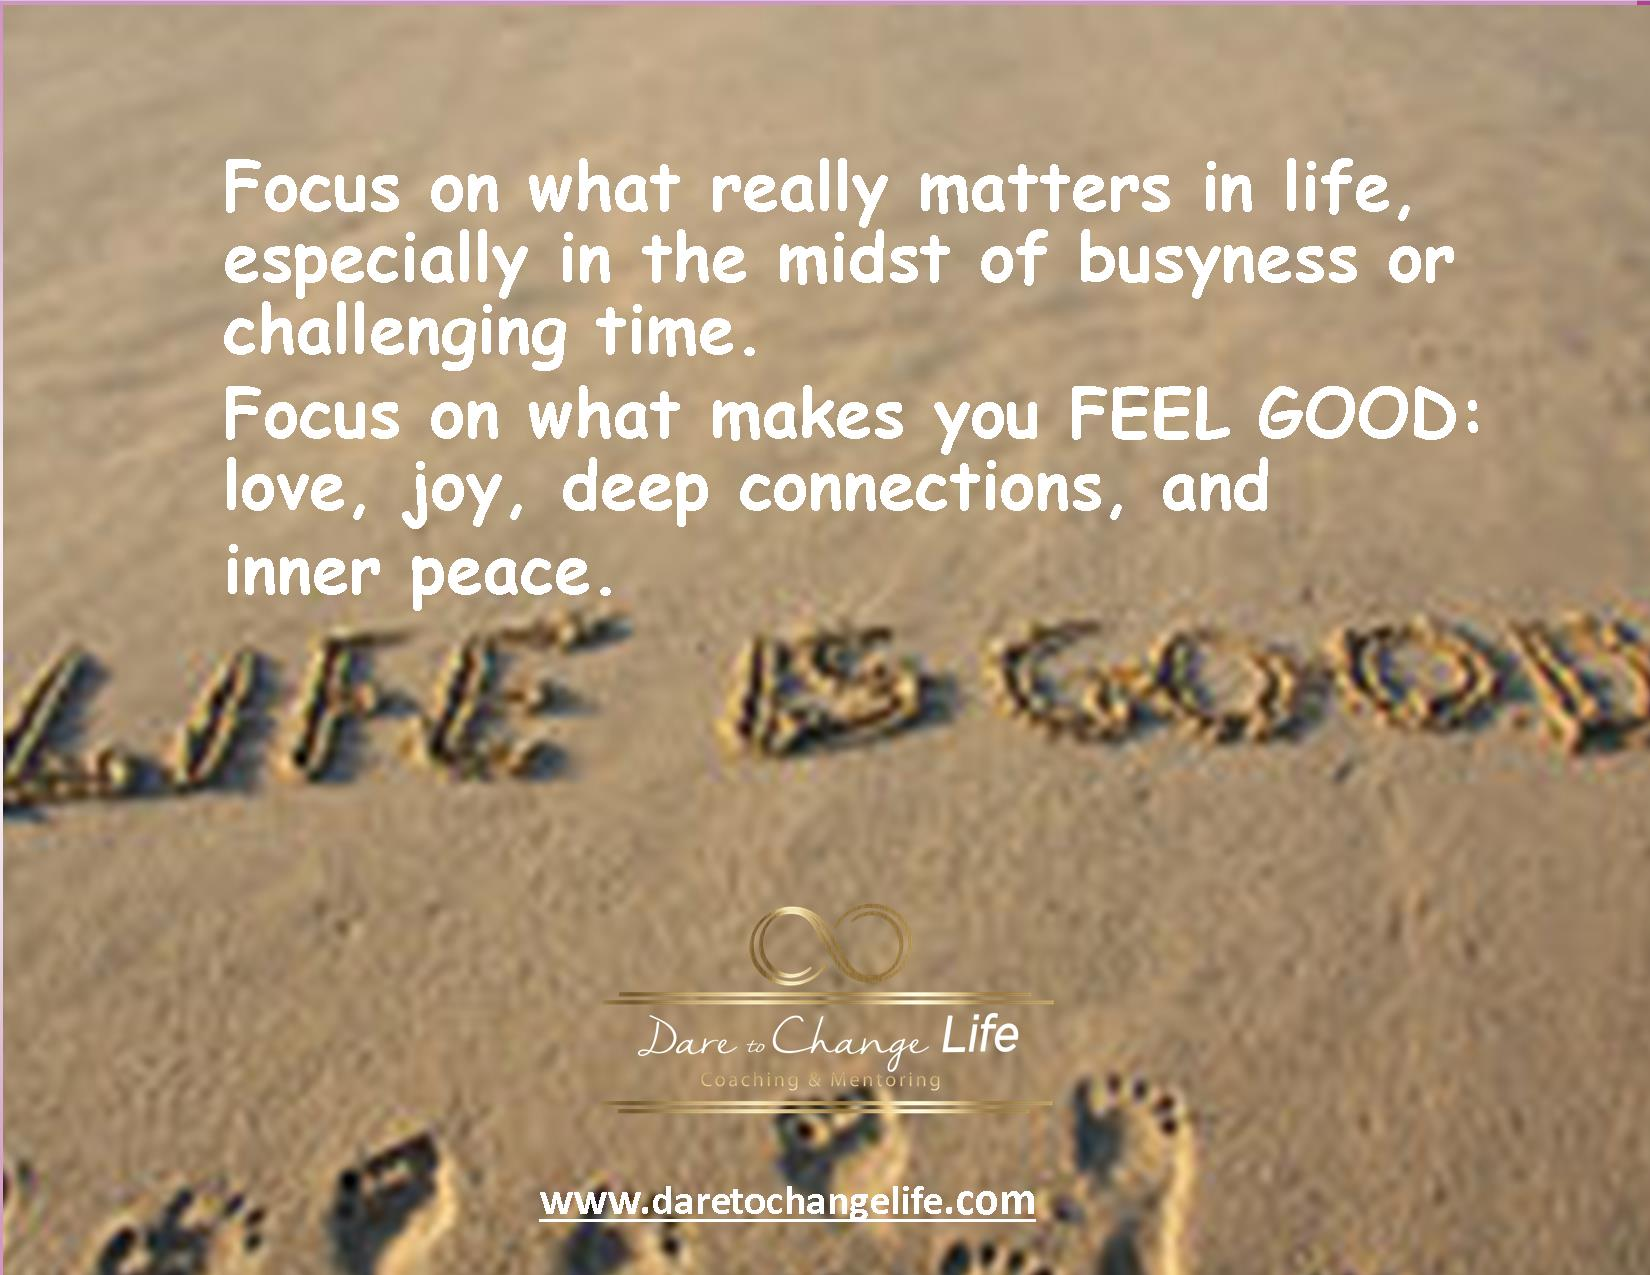 What Really Matters In Life Quotes Fair Dare To Change Life Coaching & Mentoring  What Really Matters In